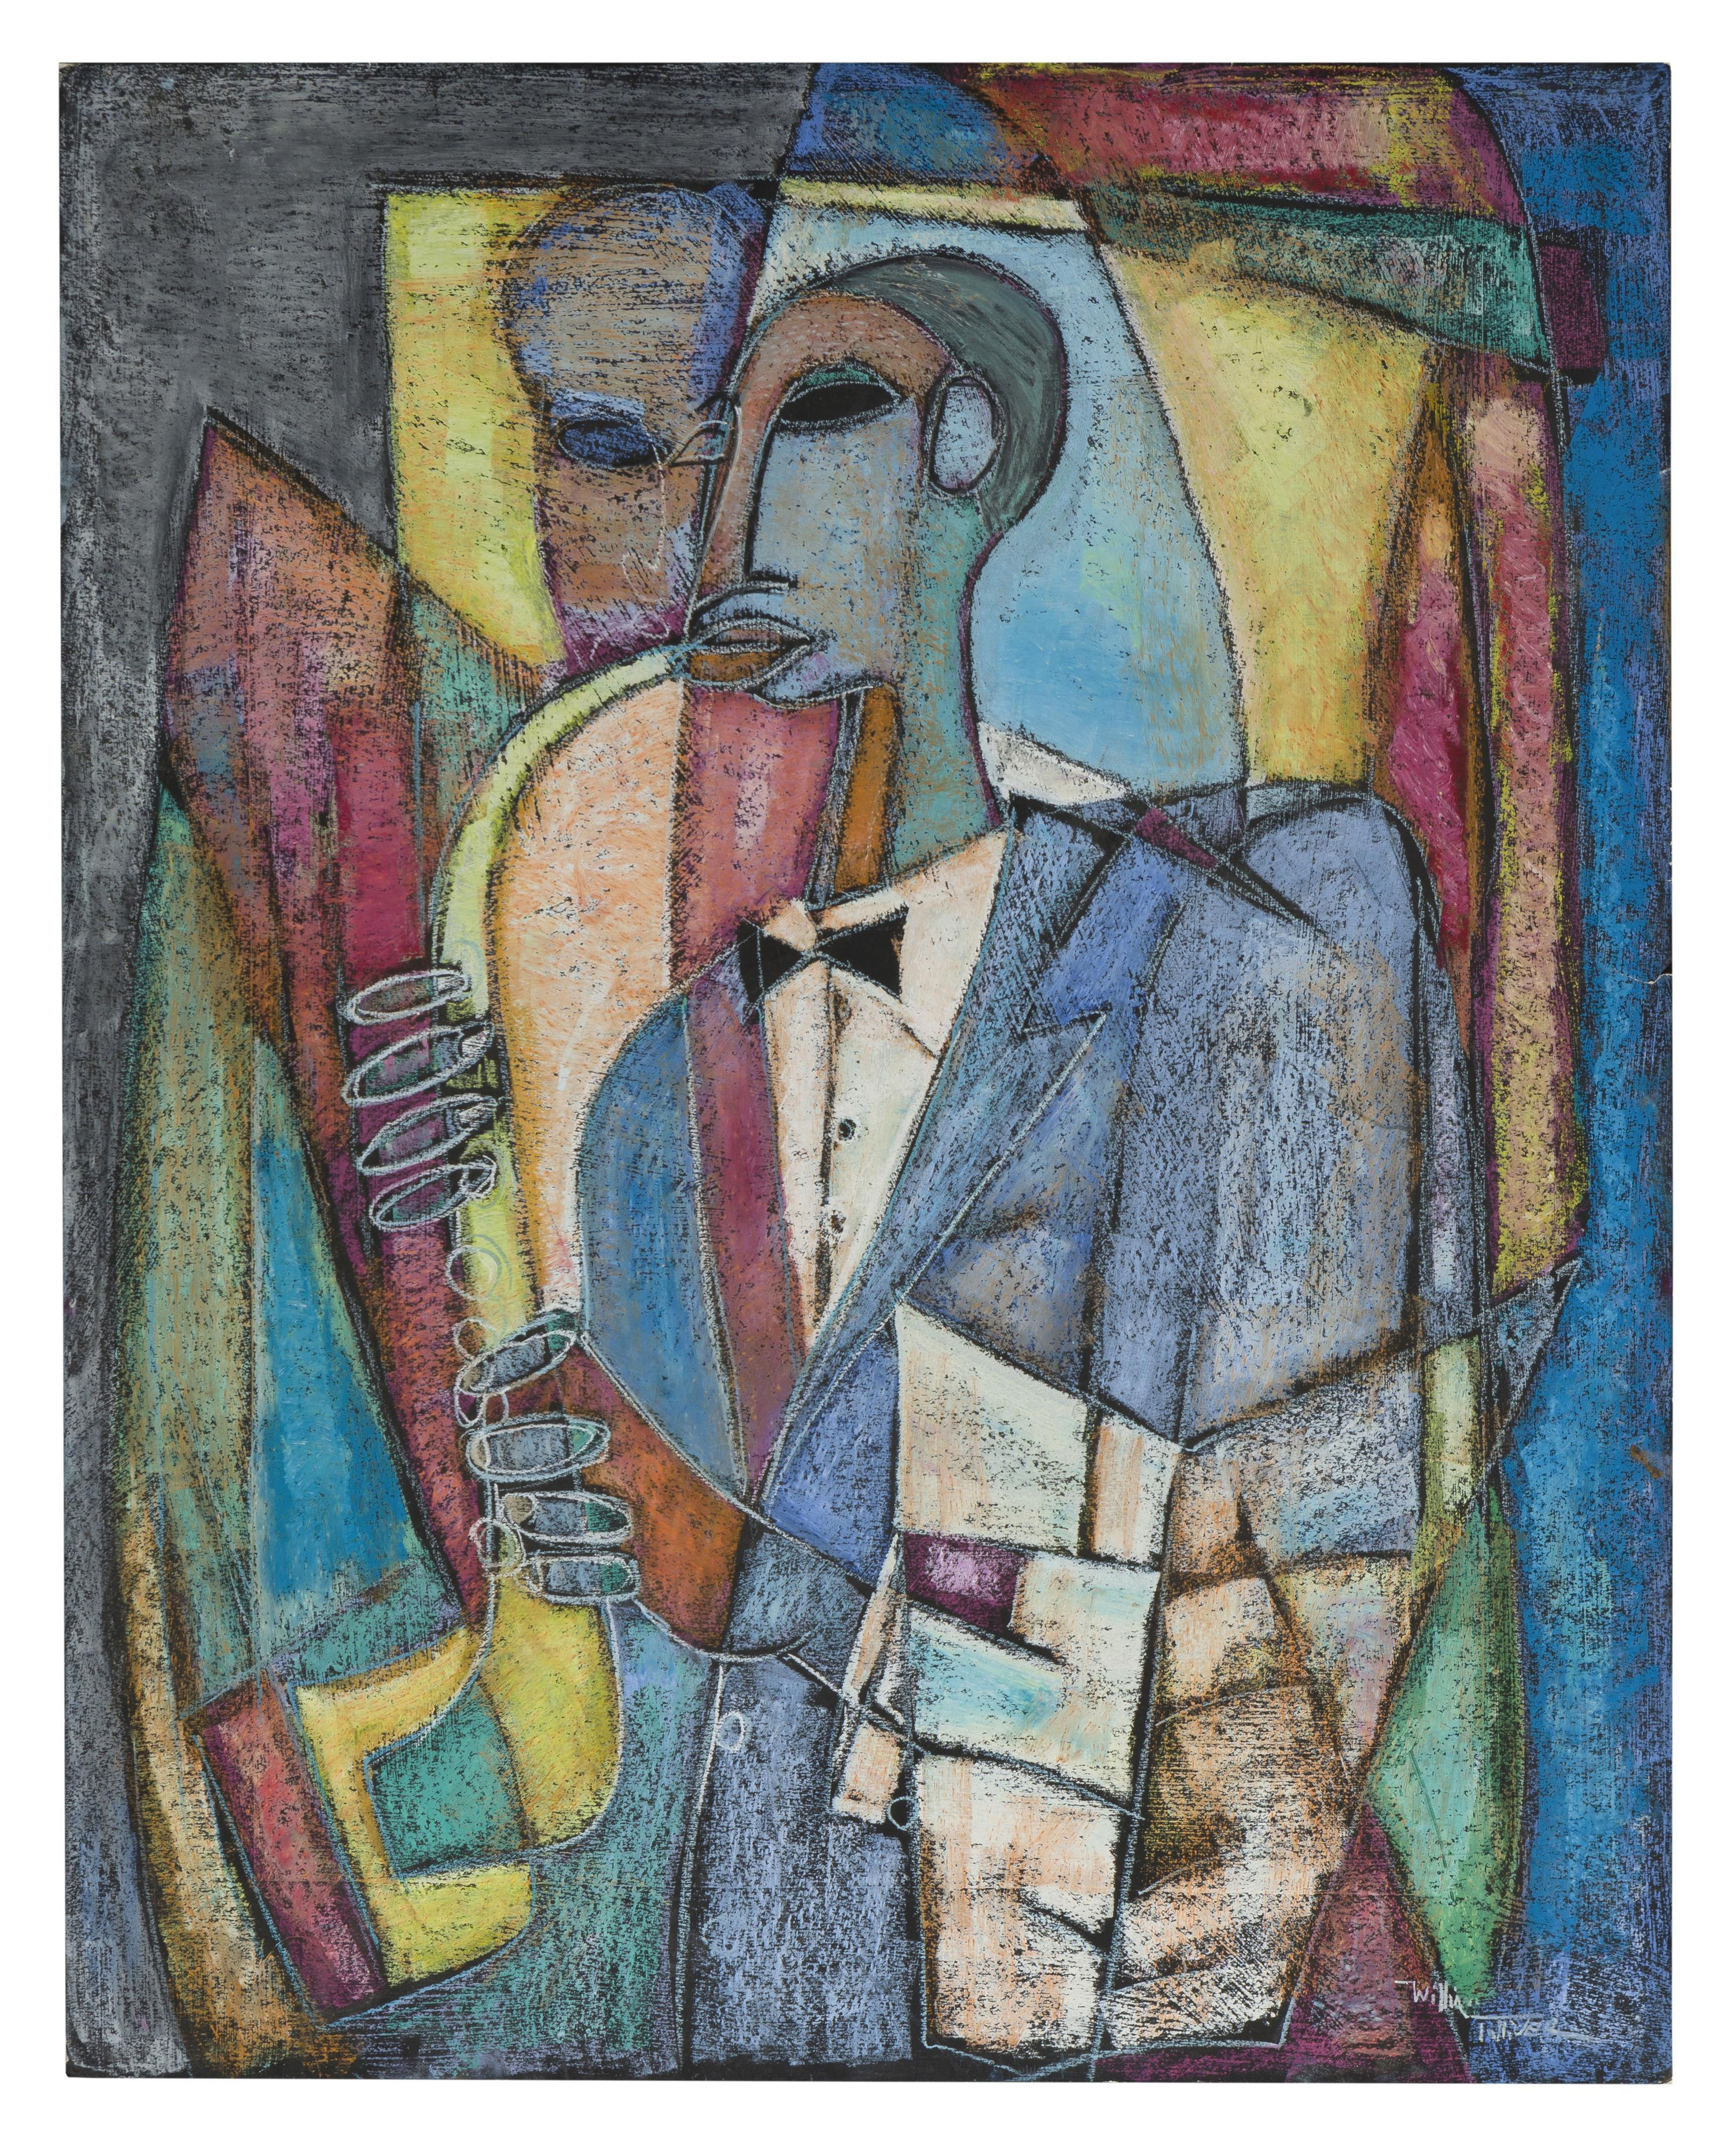 """William Tolliver, (1951-2000 American), Abstract musician, 1988, Oil on board, 16"""" H x 20"""" W"""